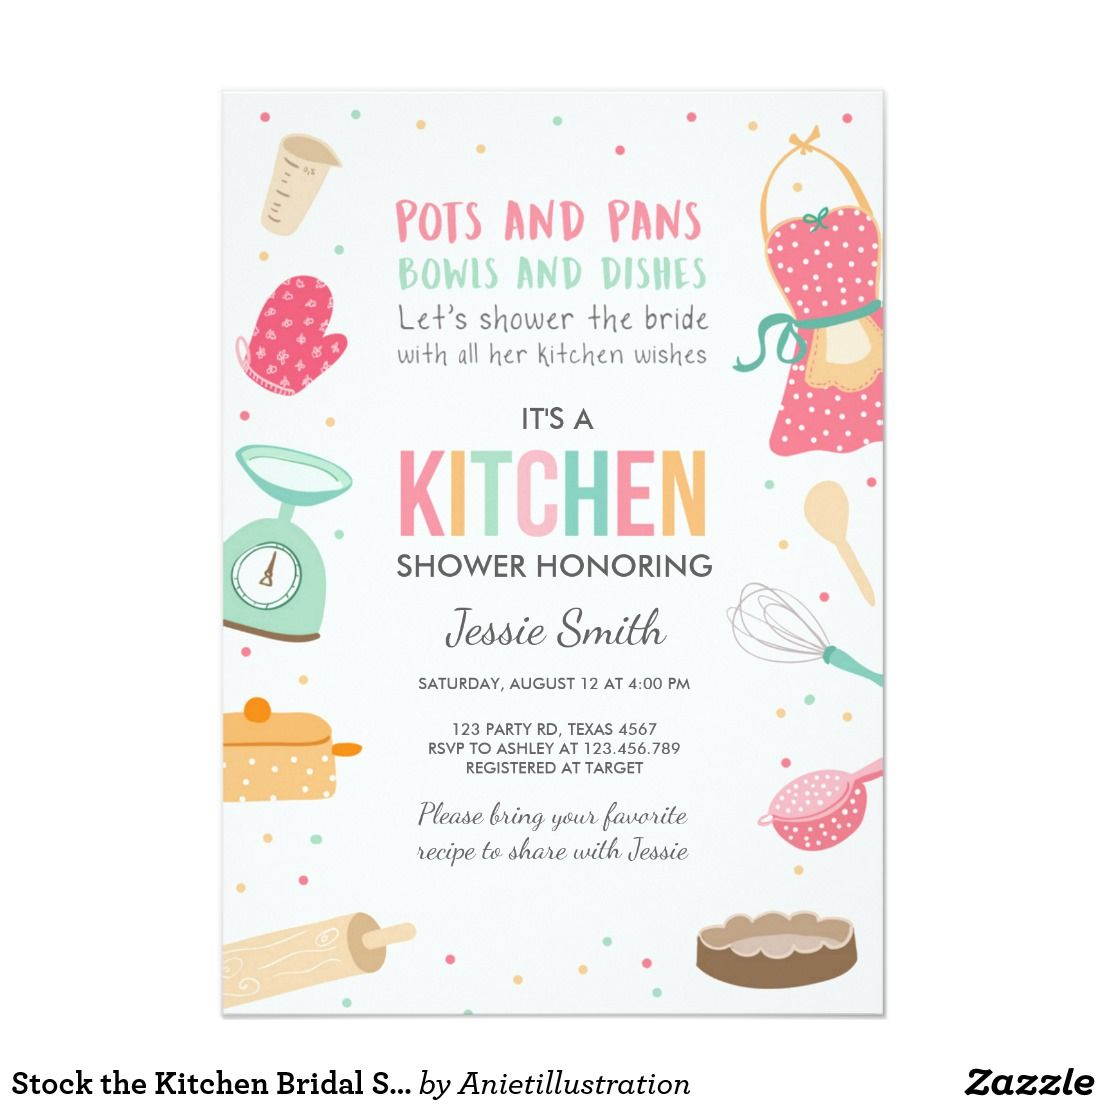 Stock the Kitchen Bridal Shower Invitation Cooking | Shower ...